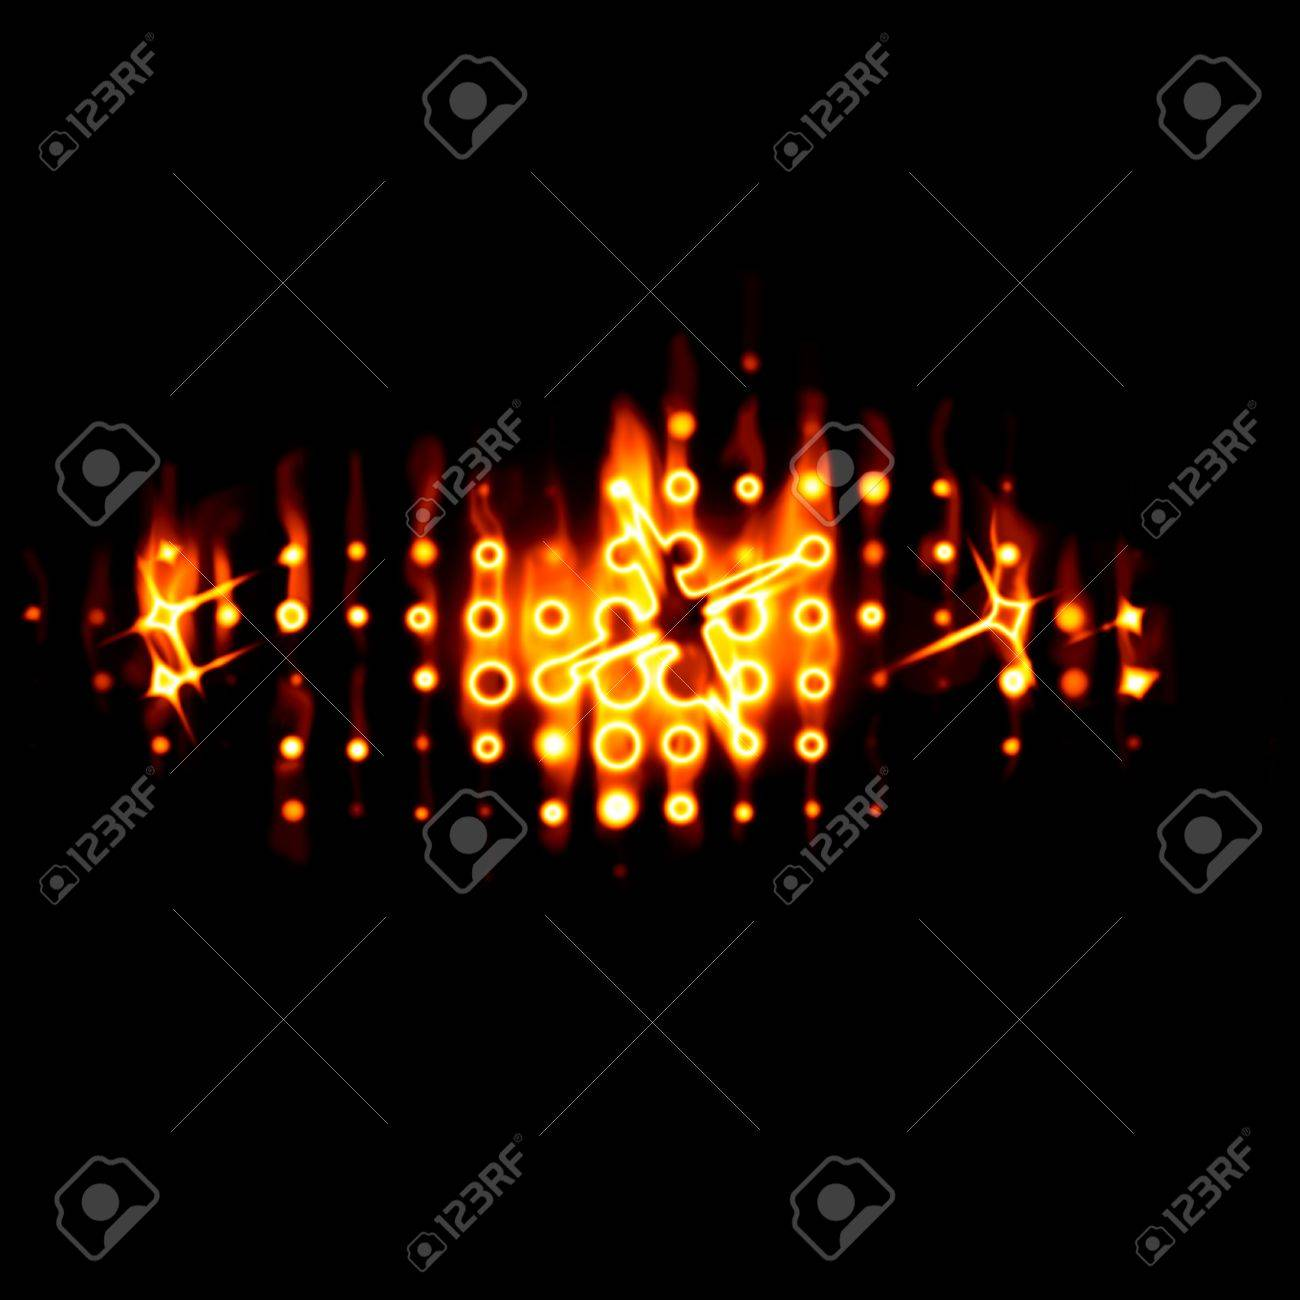 Abstract fiery drawing against a dark background Stock Photo - 10785217